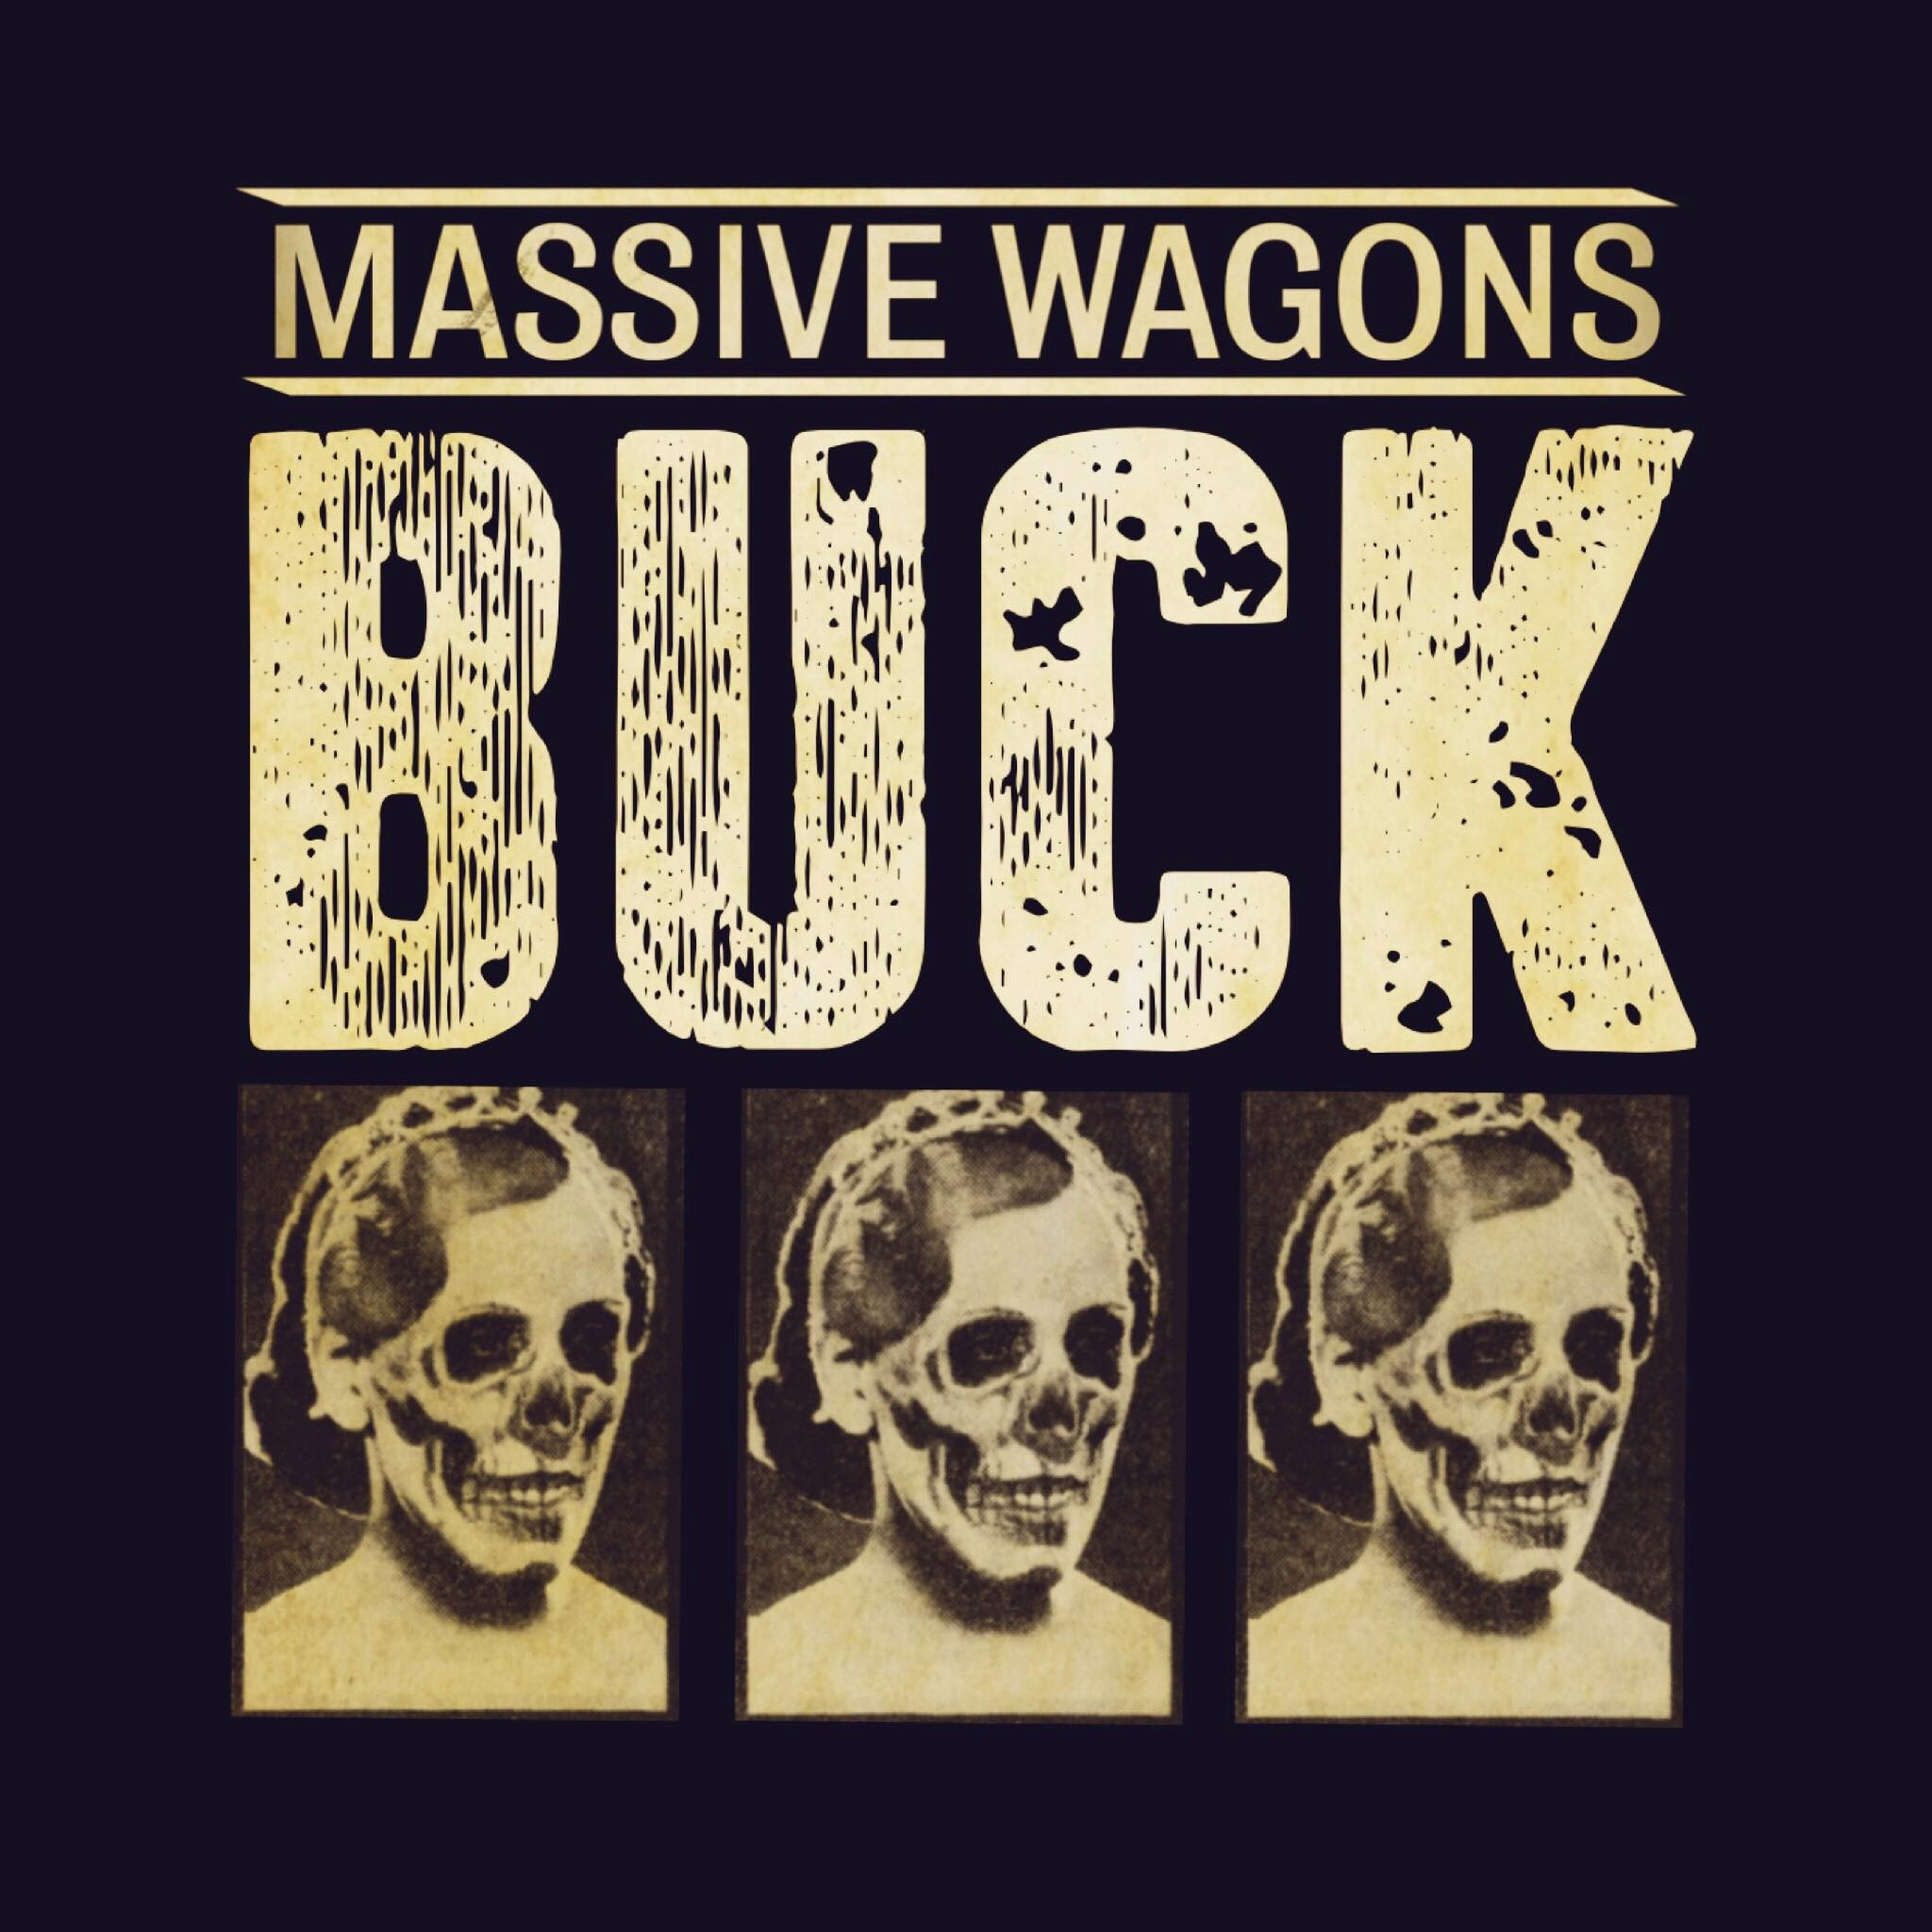 News: Massive Wagons 'Fire It Up' And Announce Remastered Release Plans Launching With Fan Favourite BUCK